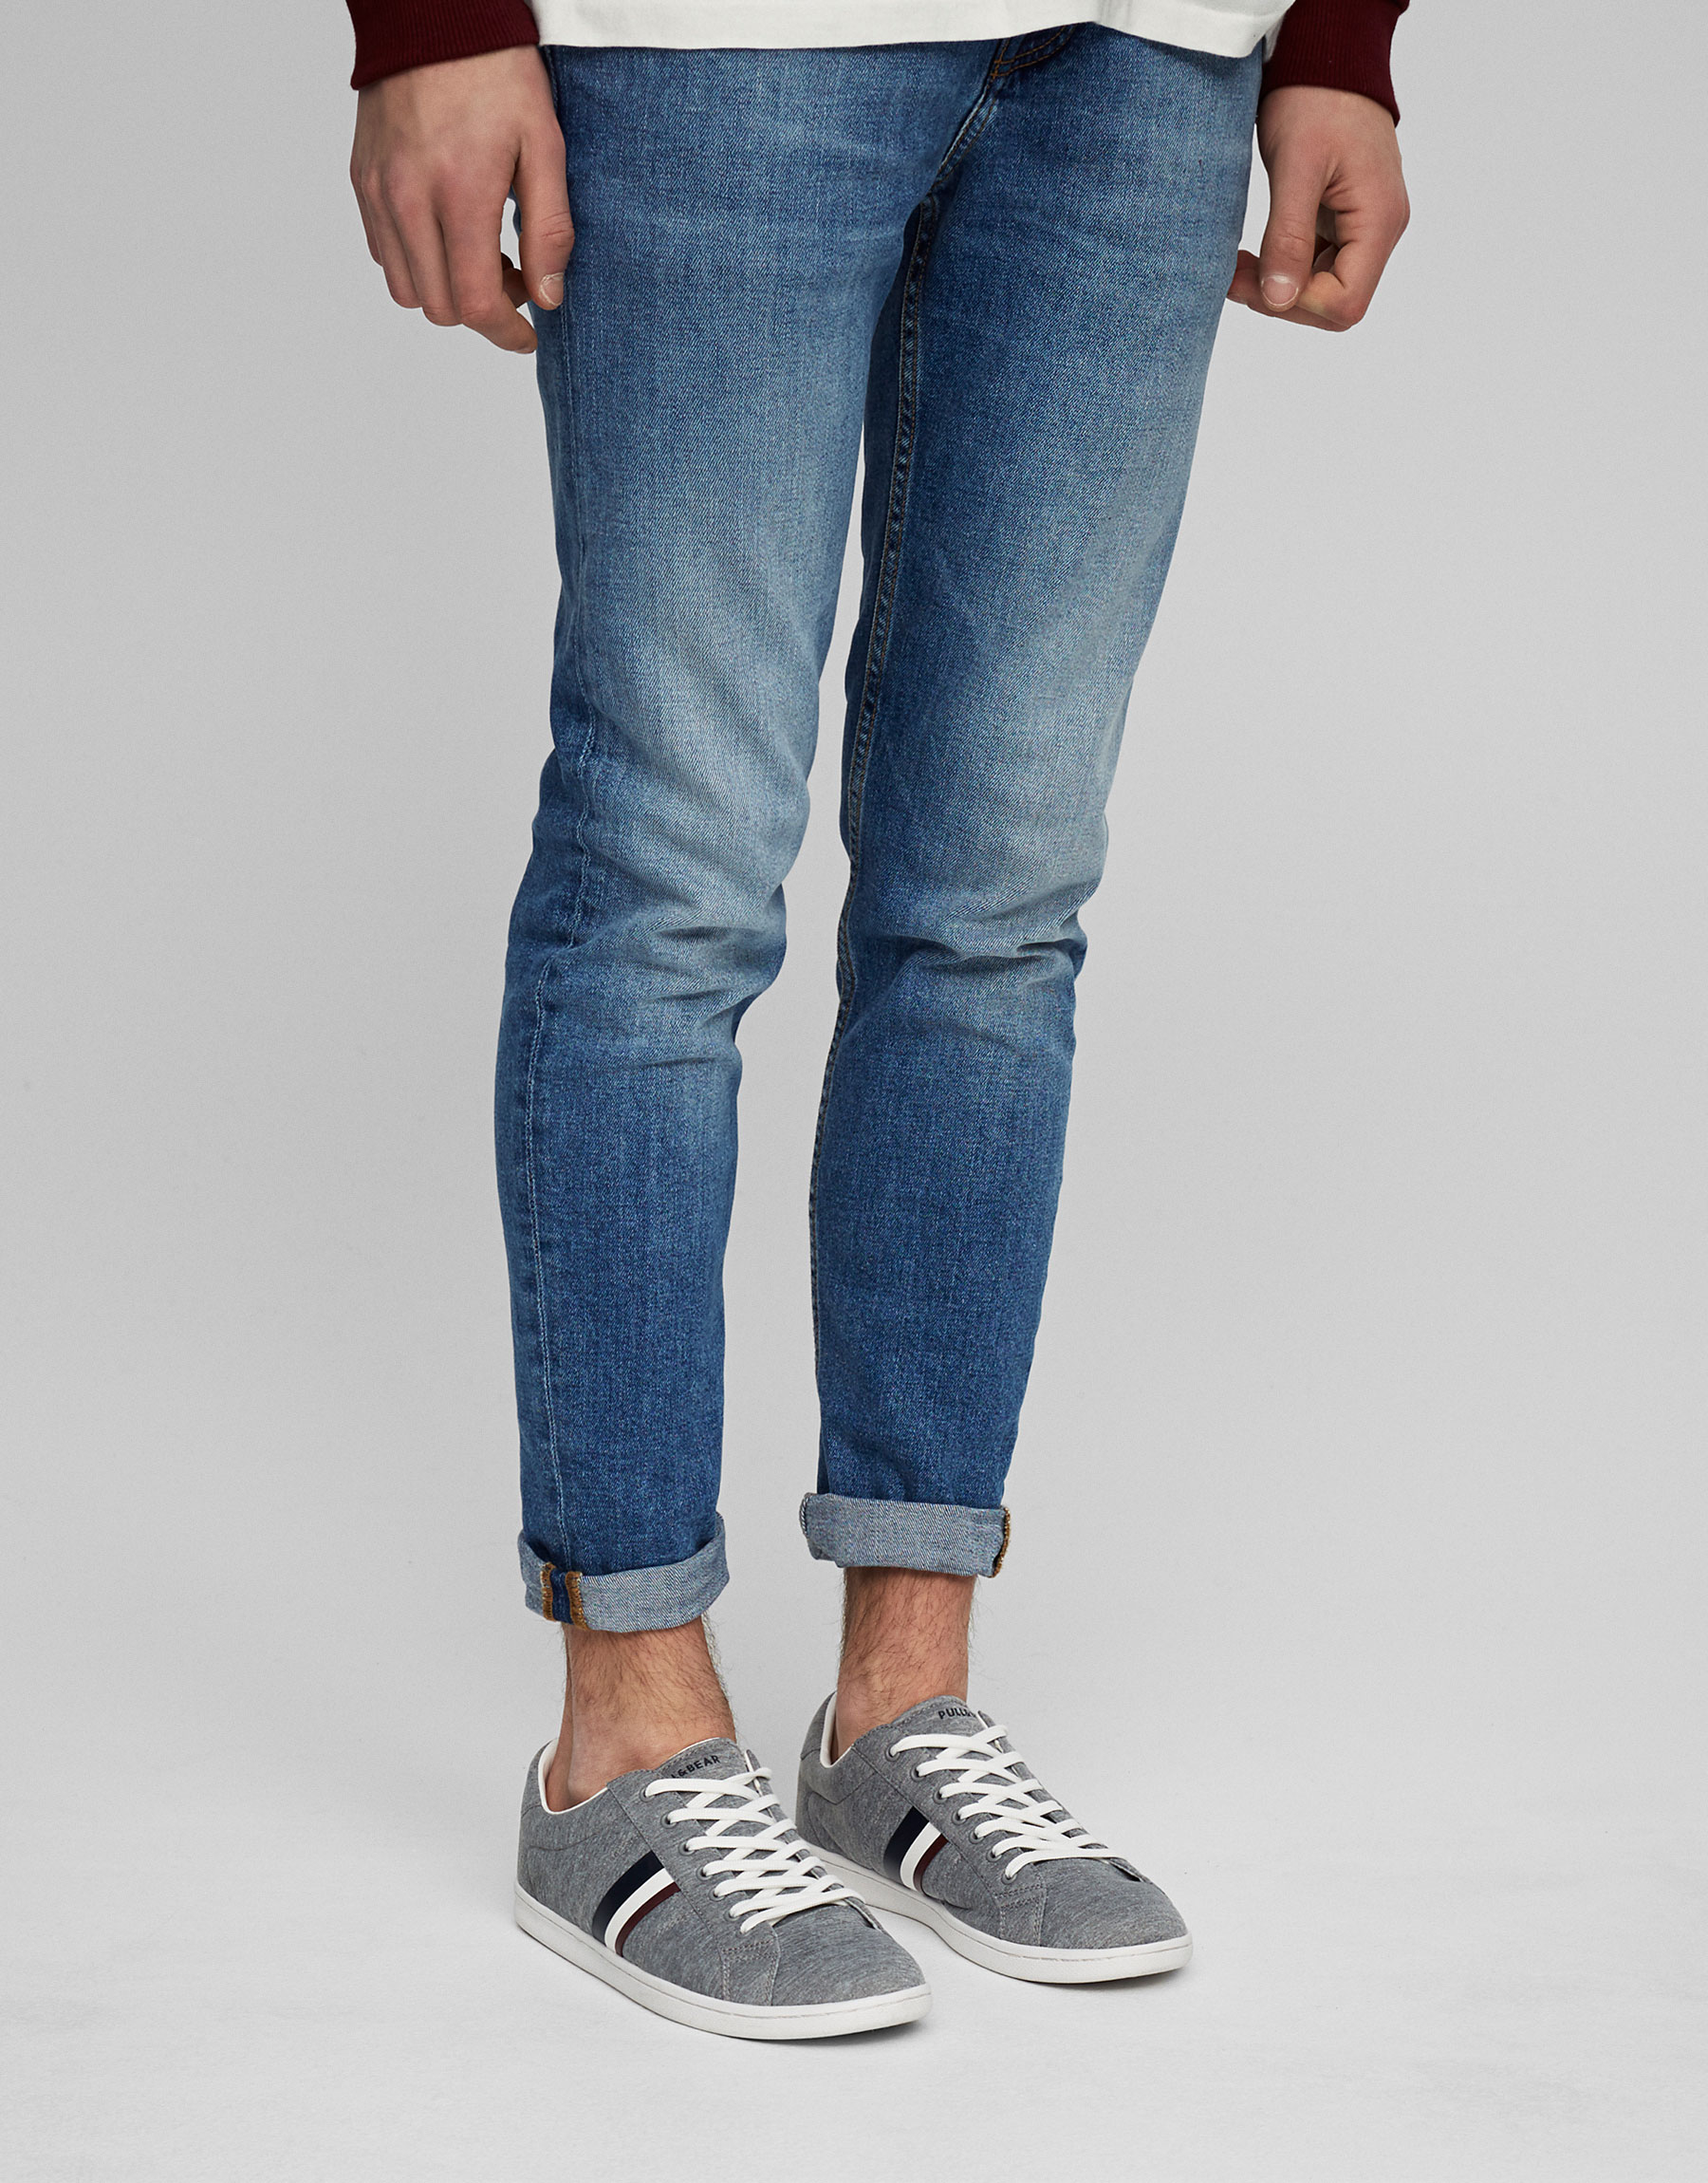 Marl semi-sporty sneakers with stripe